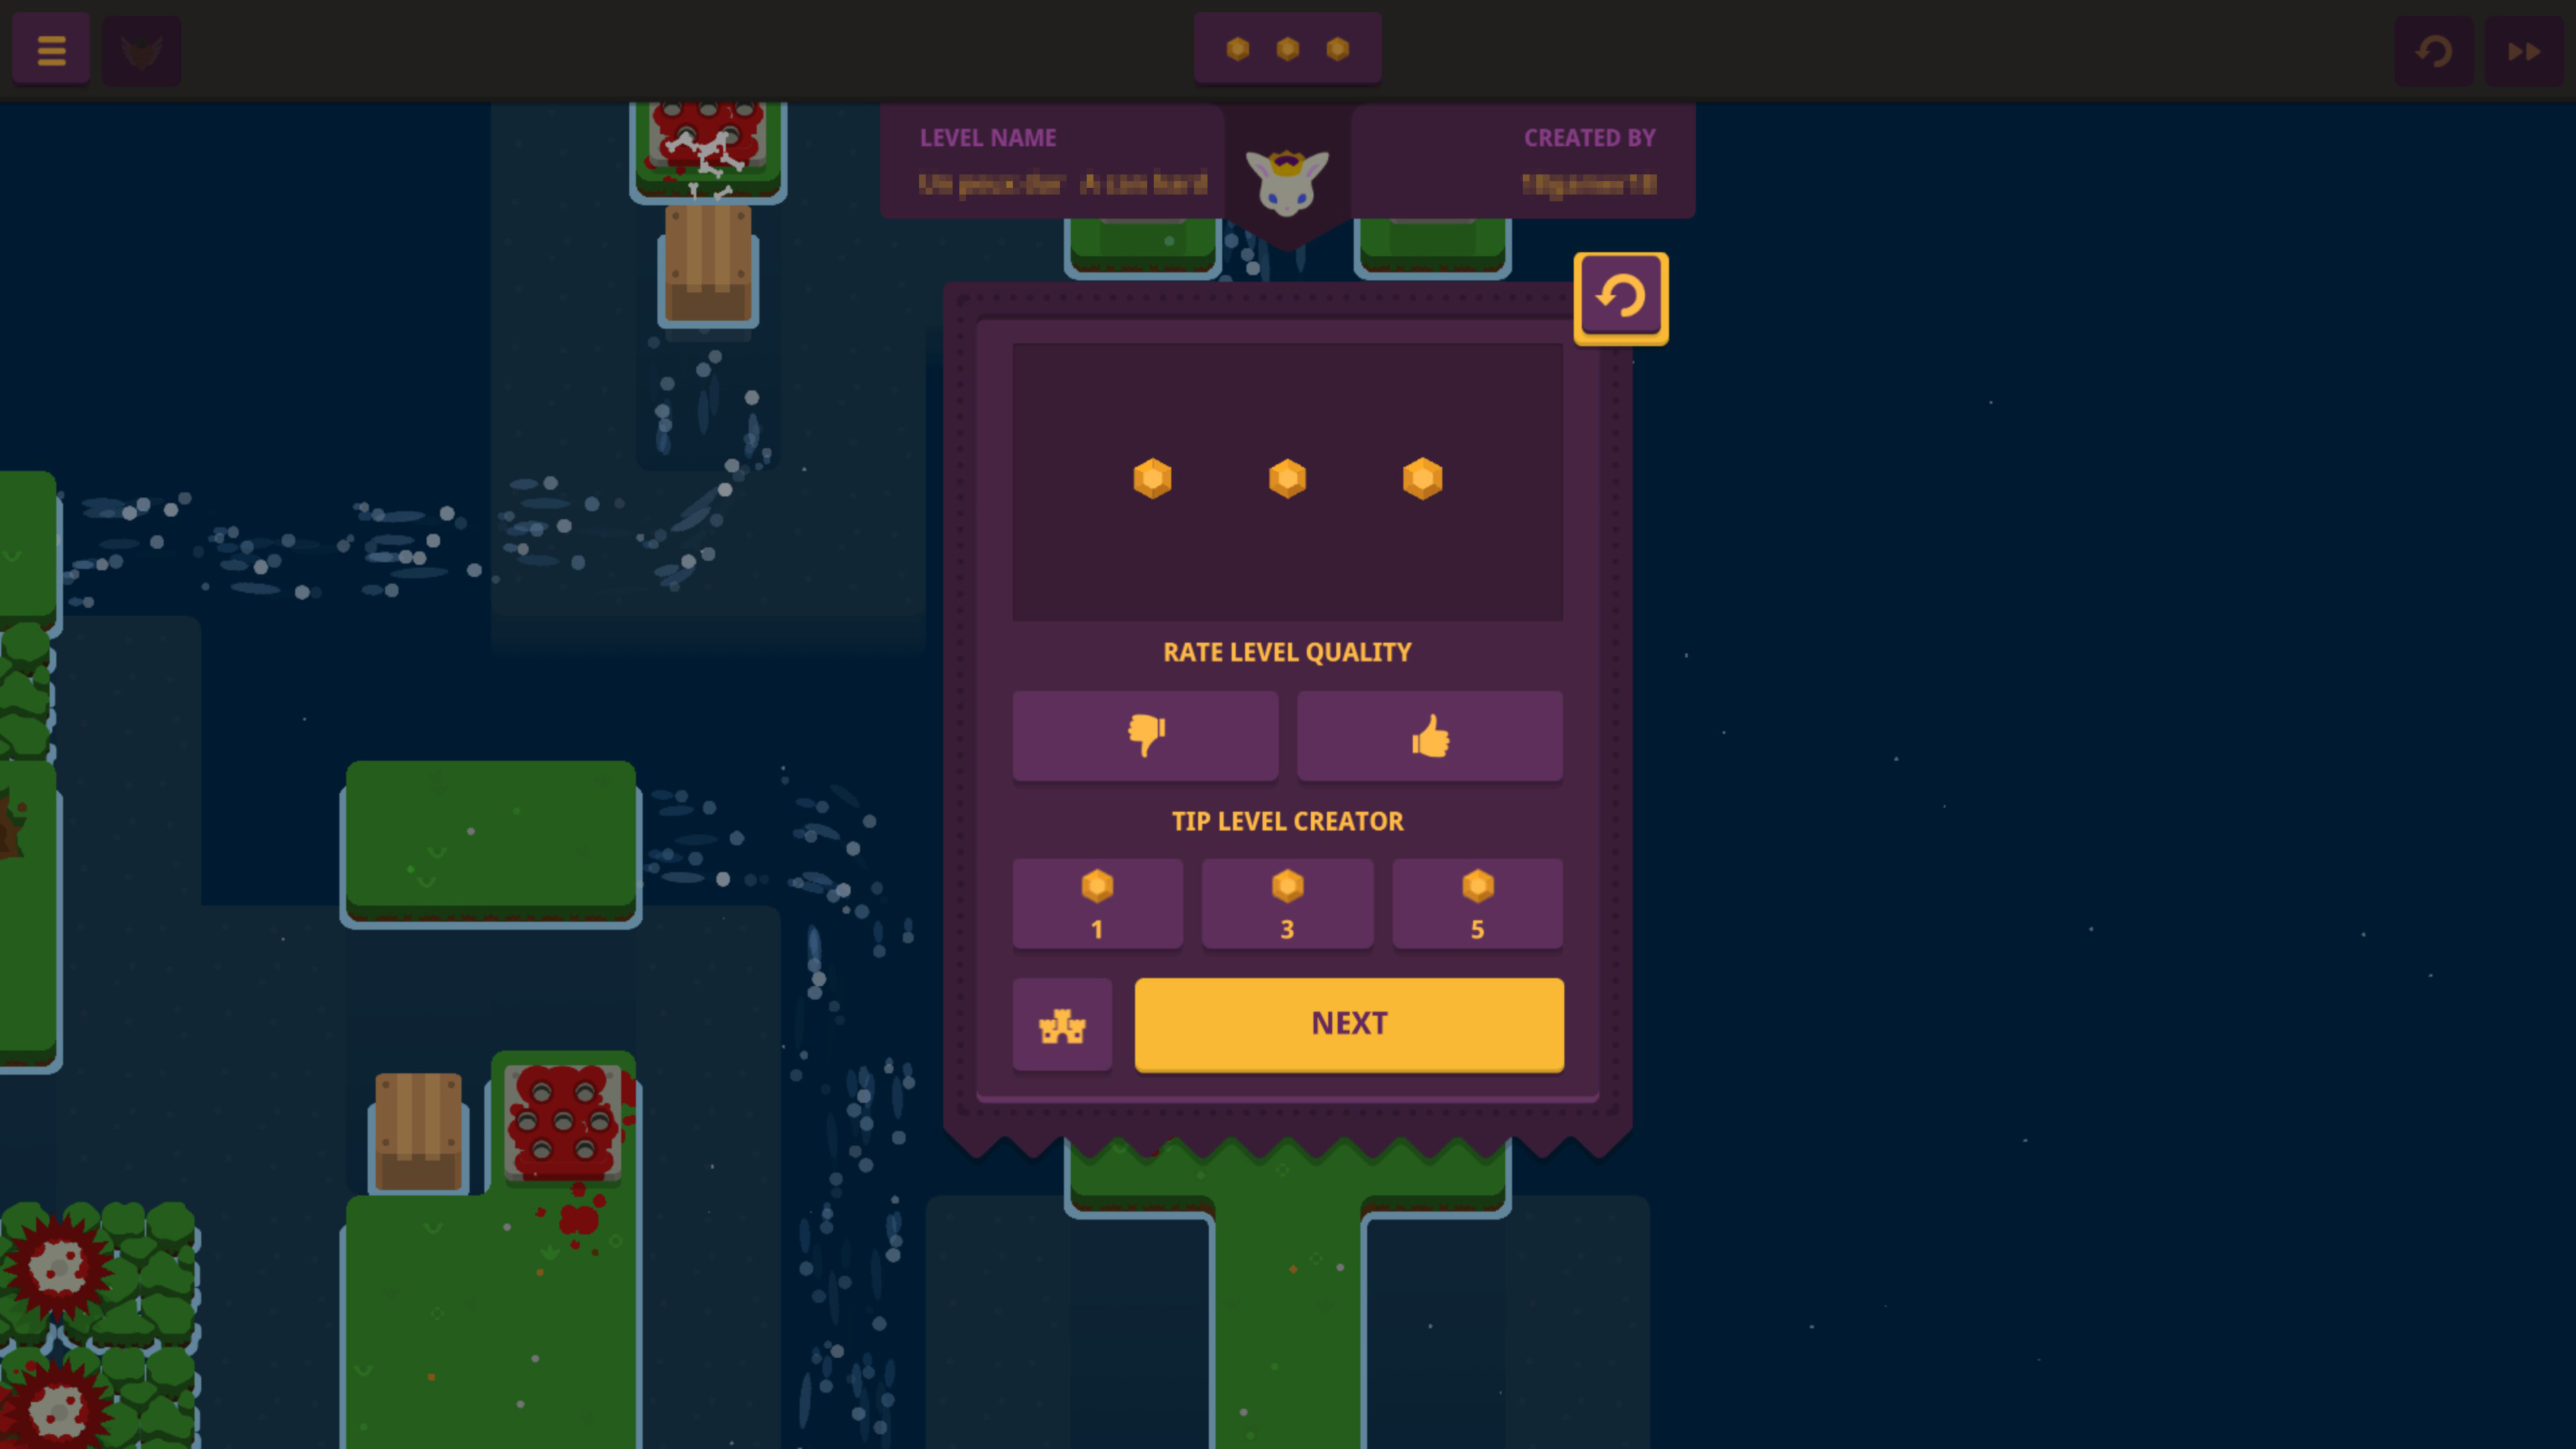 After level screen with a thumbs up or down for level quality and an option to tip the level creator 1, 3, or 5 gems